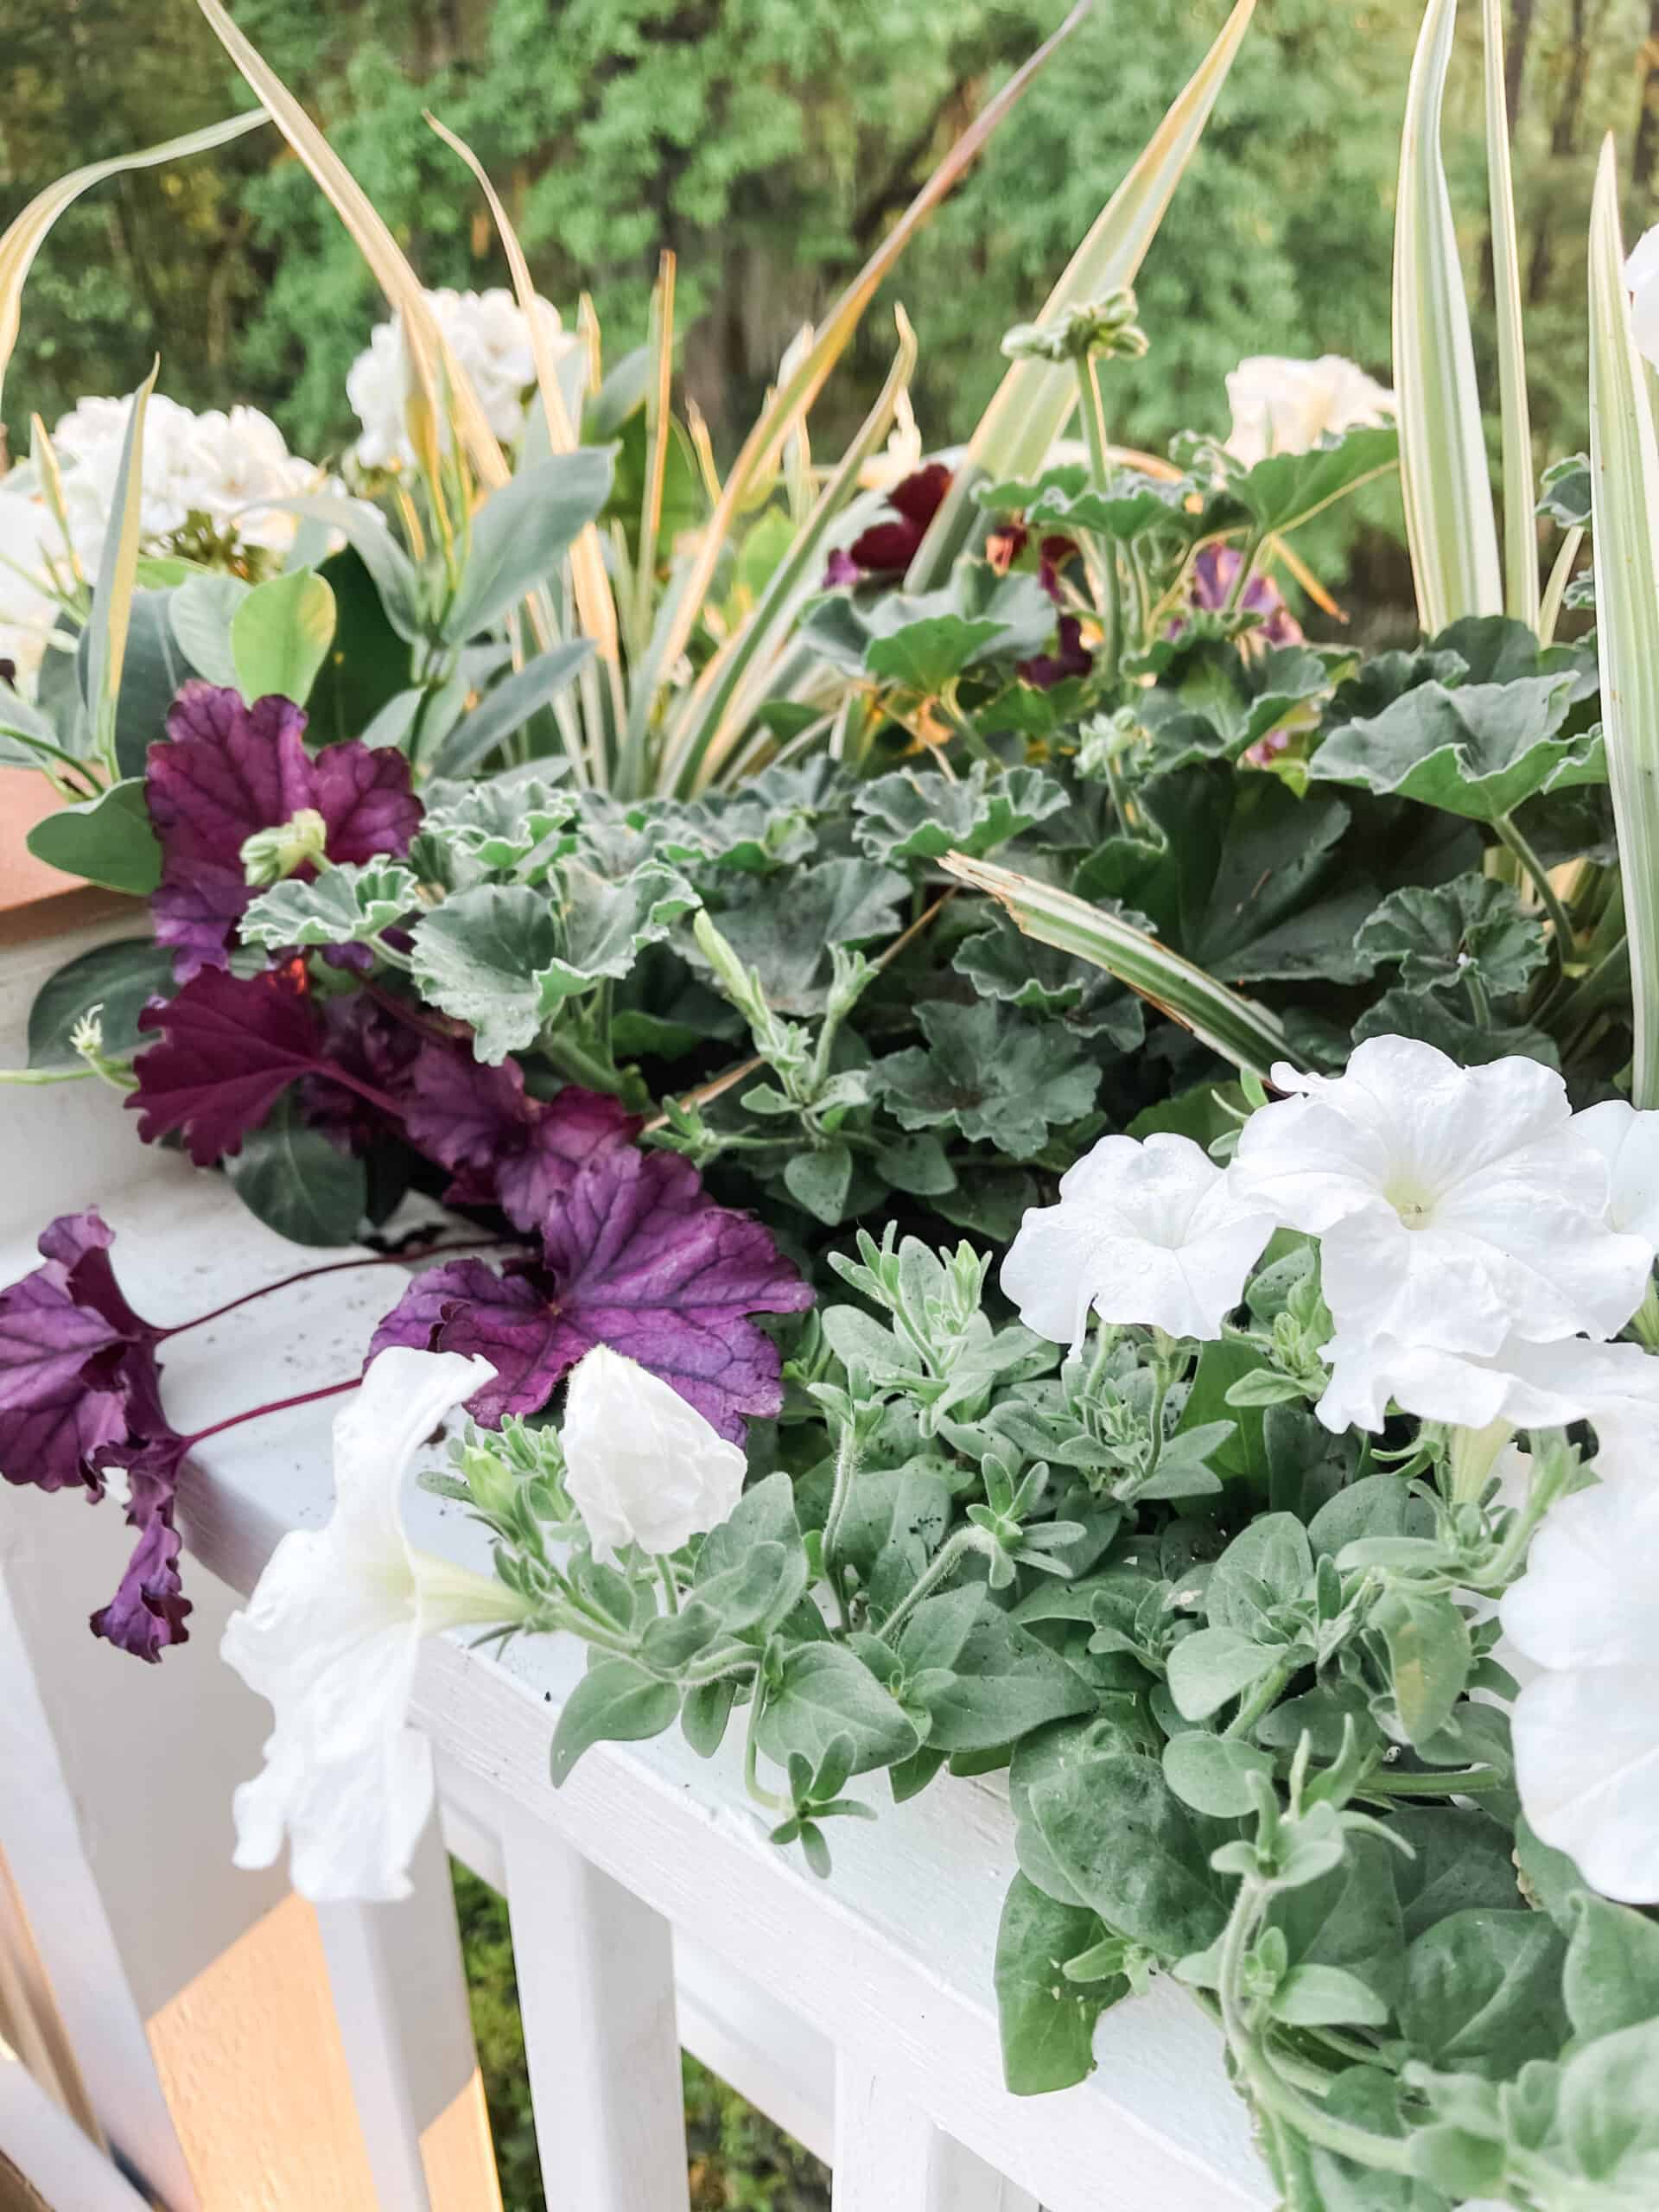 Shade loving plants that are purple and white for shade and partial shade window box.